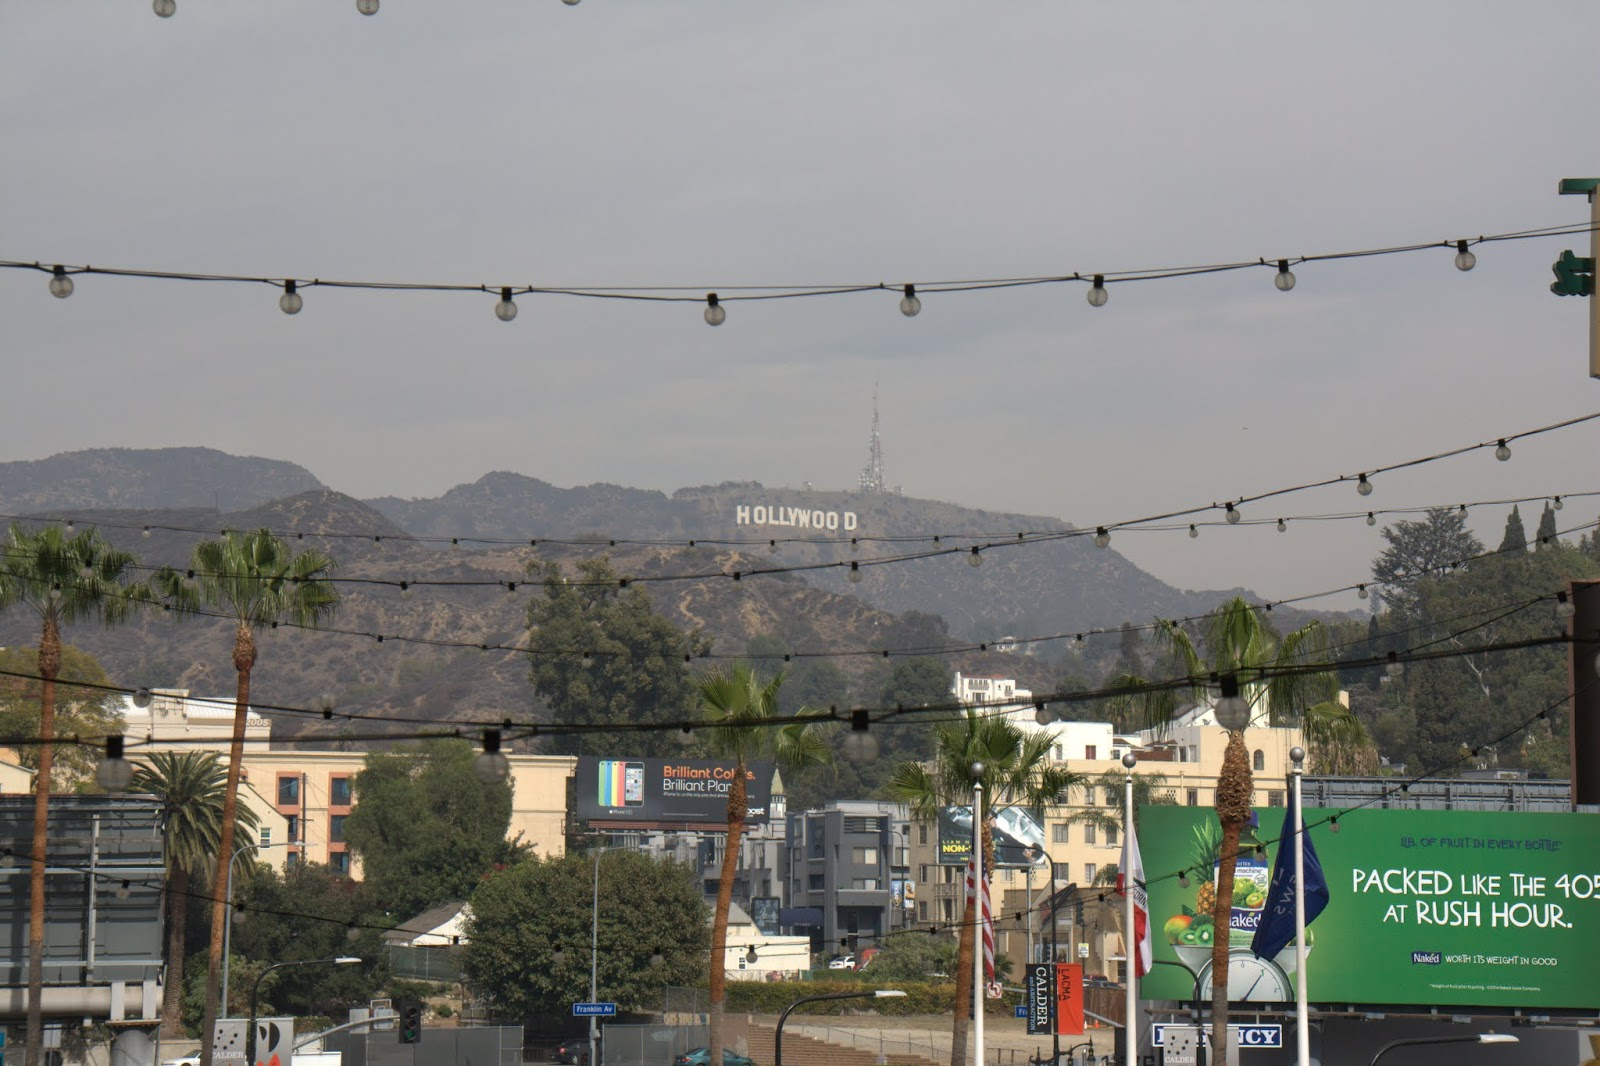 Hollywood sign, as seen from Hollywood